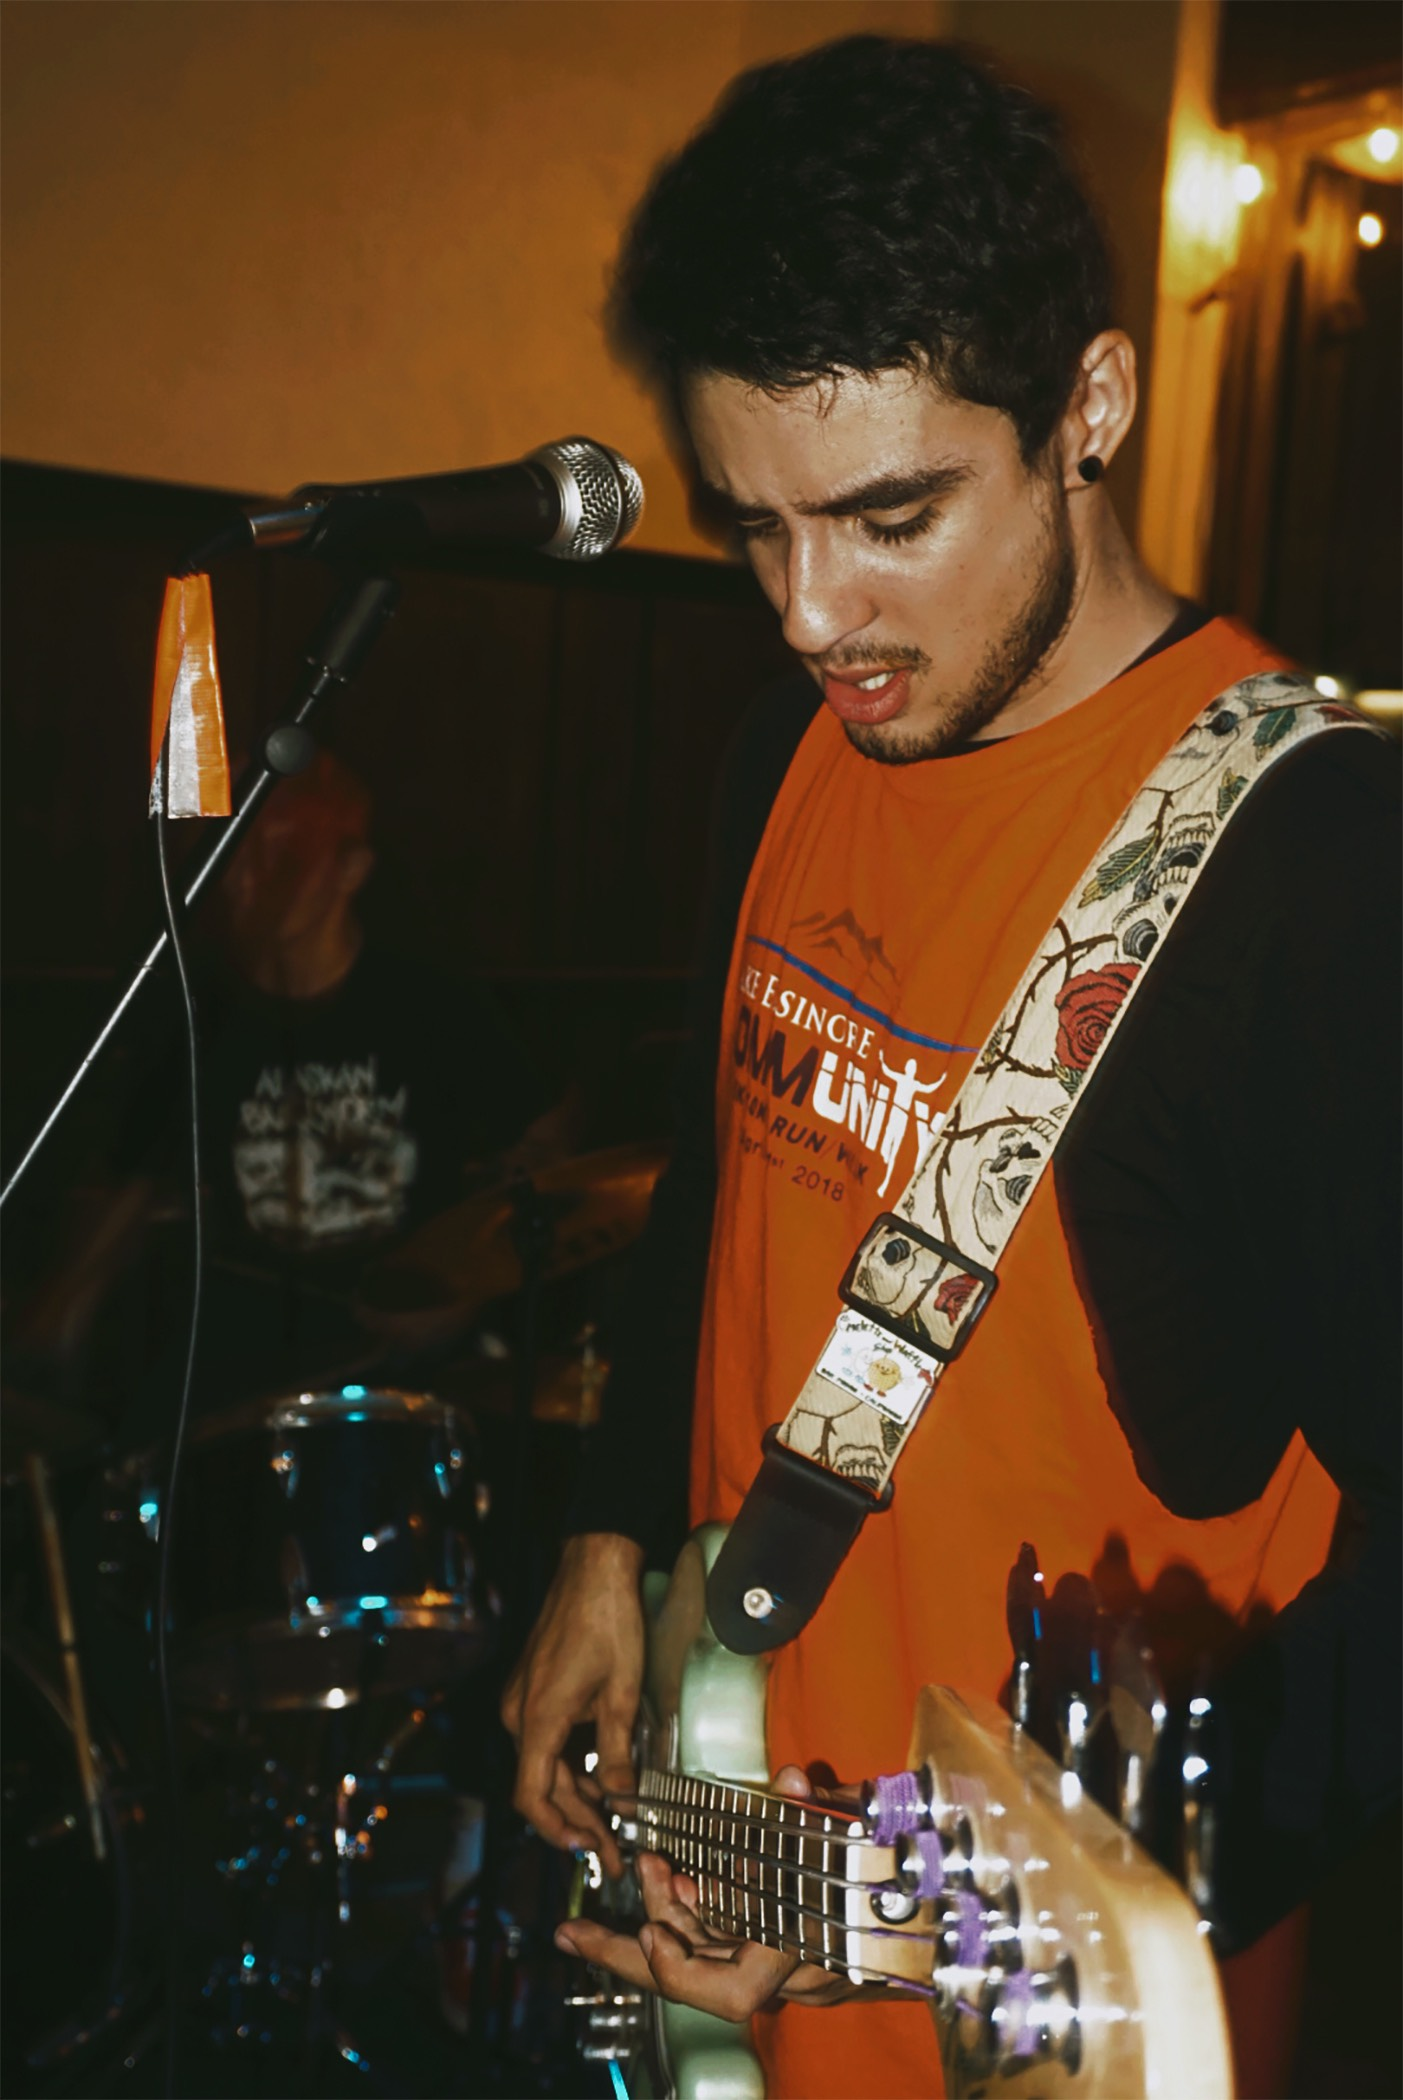 Carmine is an extreme expressionist; writing music that pushes himself and his art to be as unique and in-your-face as possible.